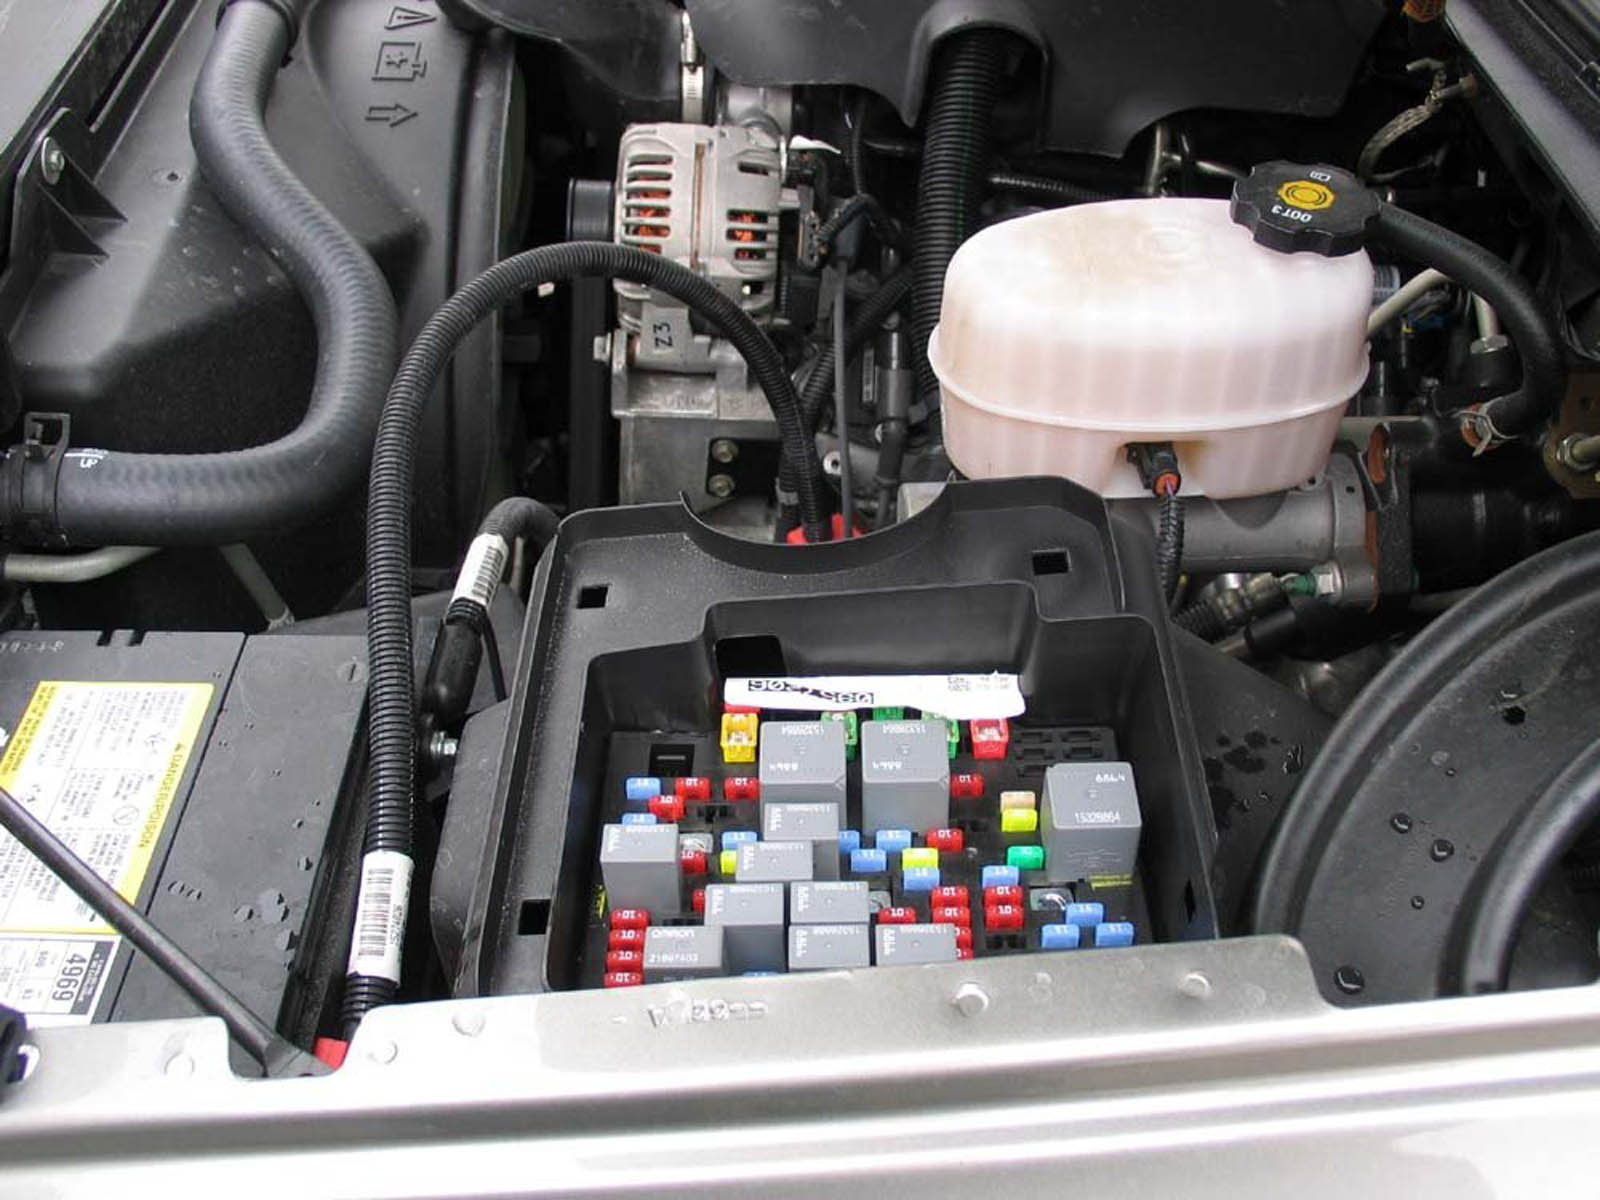 2008 Equinox Fuse Box Diagram Wiring Will Be A Thing Honda Element Chevrolet Silverado Gmt800 1999 2006 Chevy Lt 2004